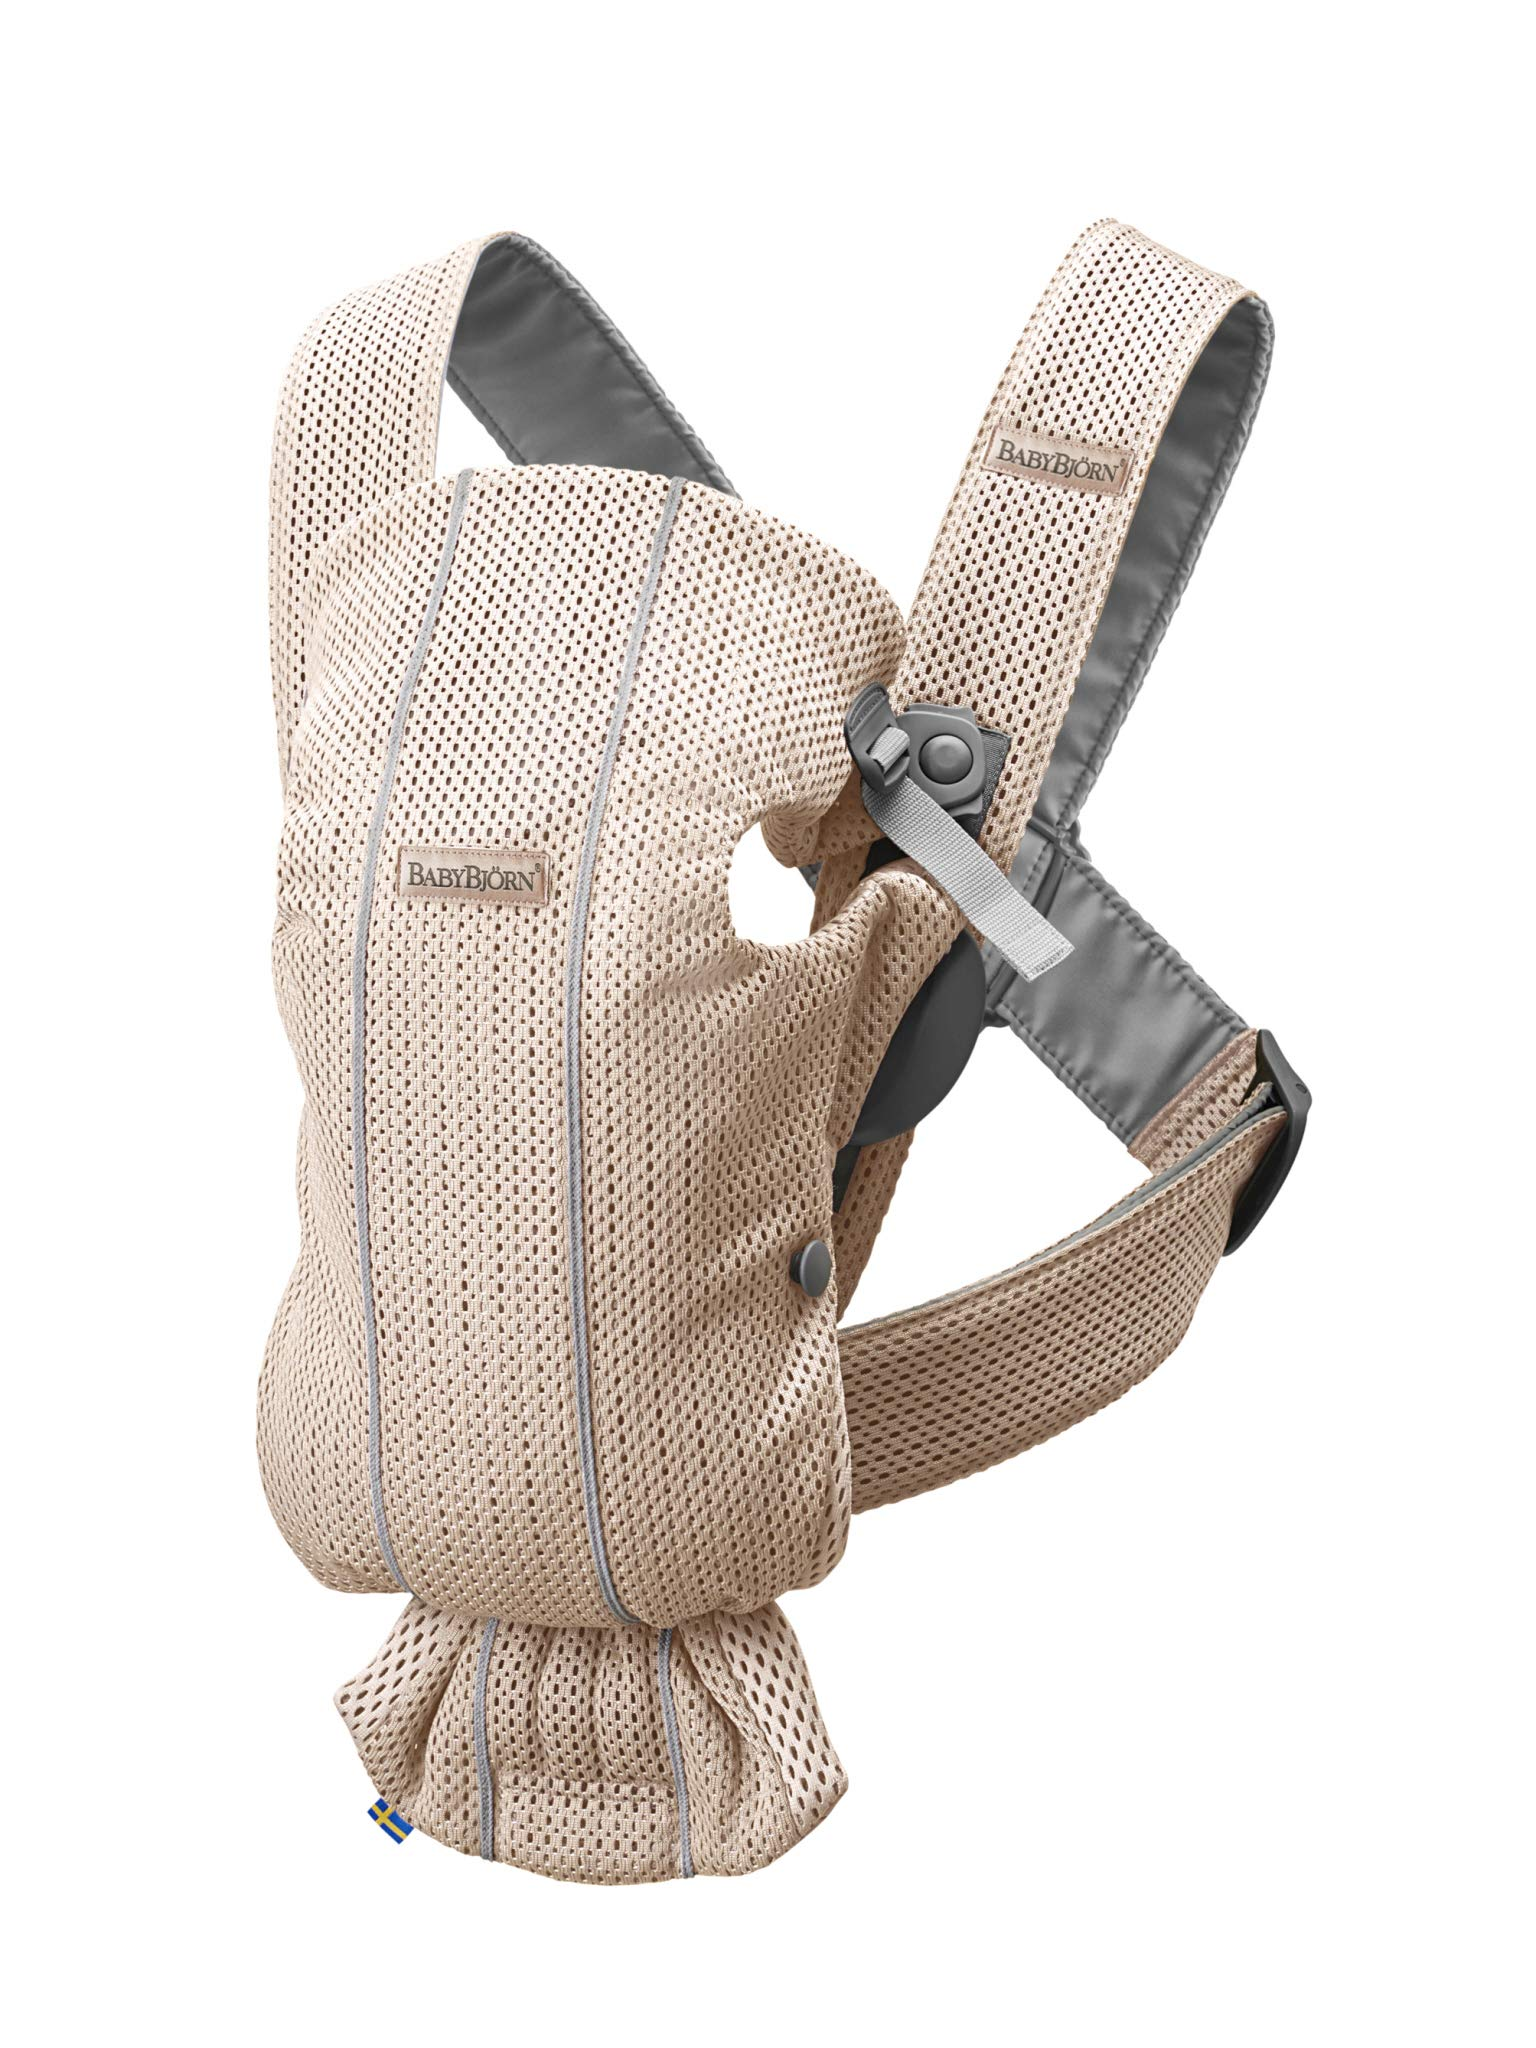 BABYBJÖRN Baby Carrier Mini, 3D Mesh, Pearly Pink Baby Bjorn Perfect first baby carrier for a newborn Small and easy to use 3D Mesh - Cool and airy mesh fabric, with an incredibly soft inner layer next to your newborn's skin 1